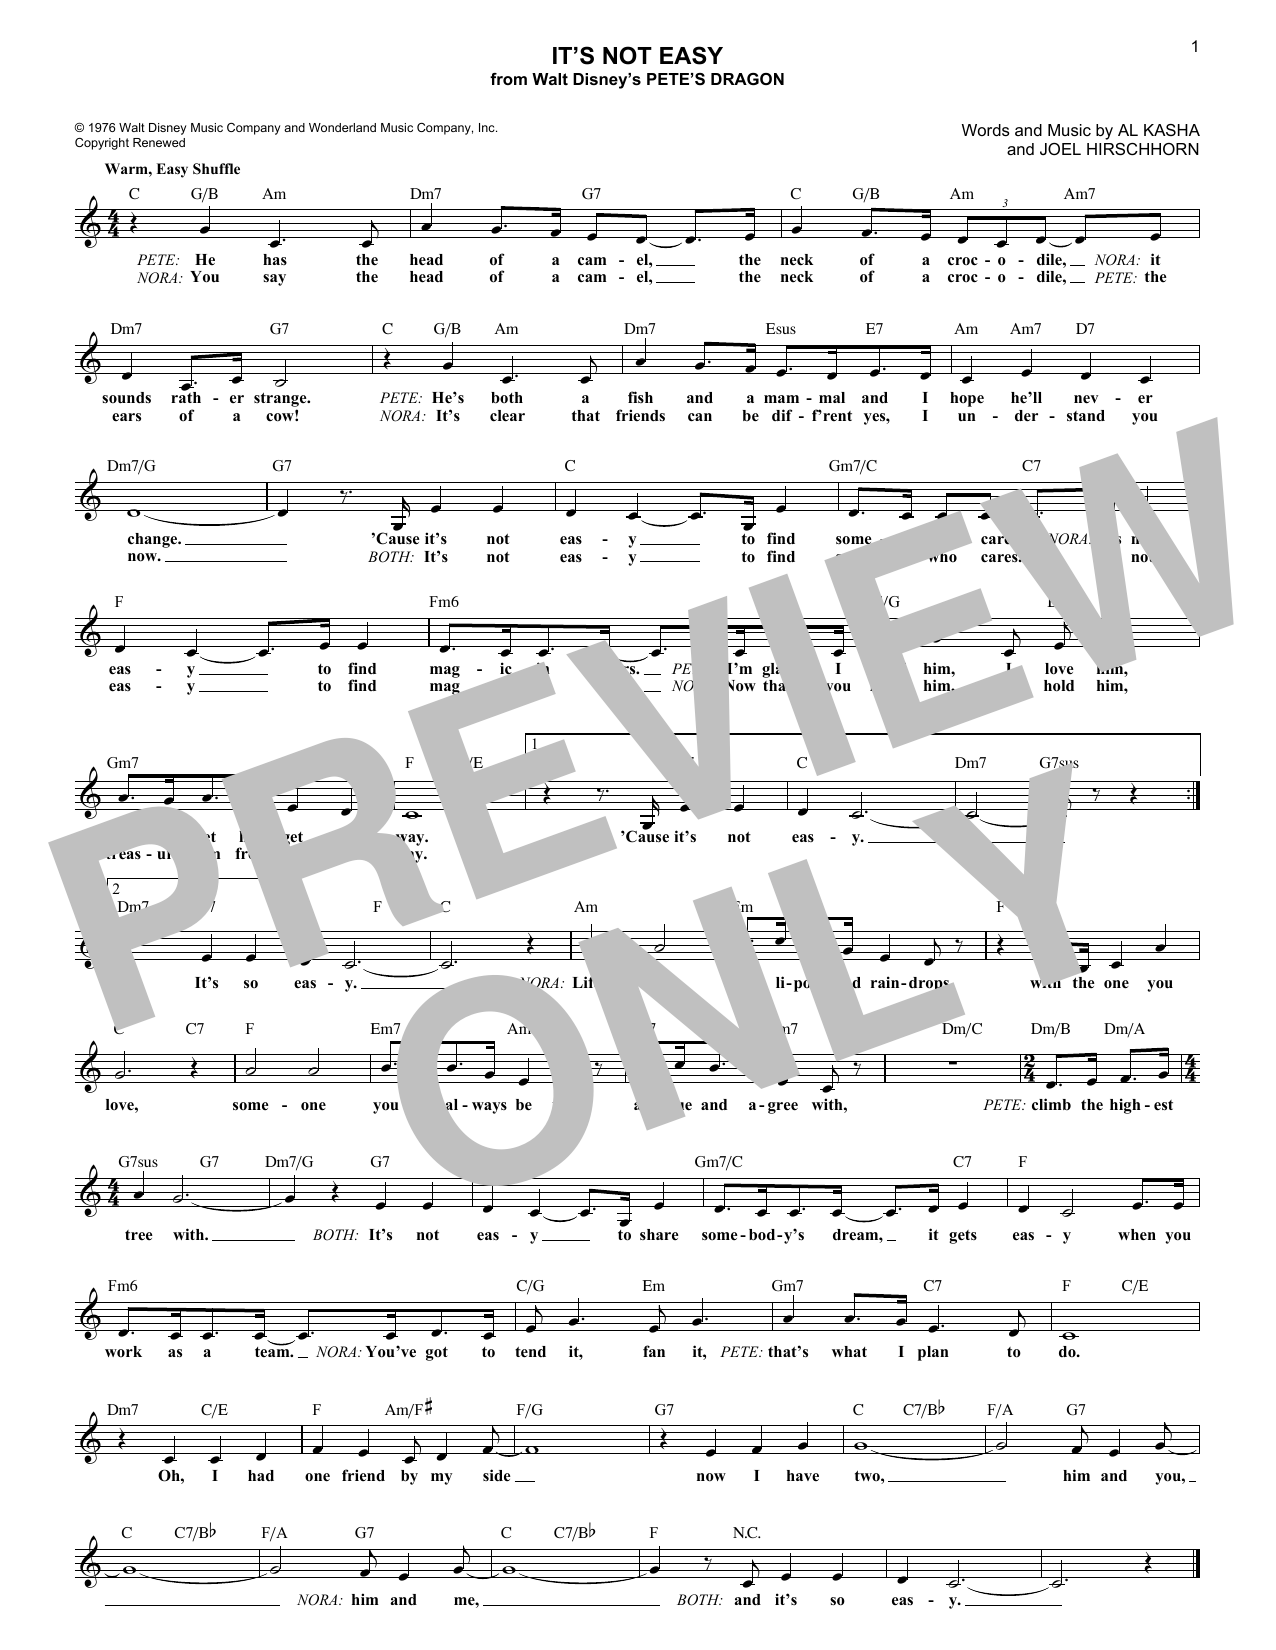 Joel Hirschhorn It's Not Easy sheet music notes and chords. Download Printable PDF.